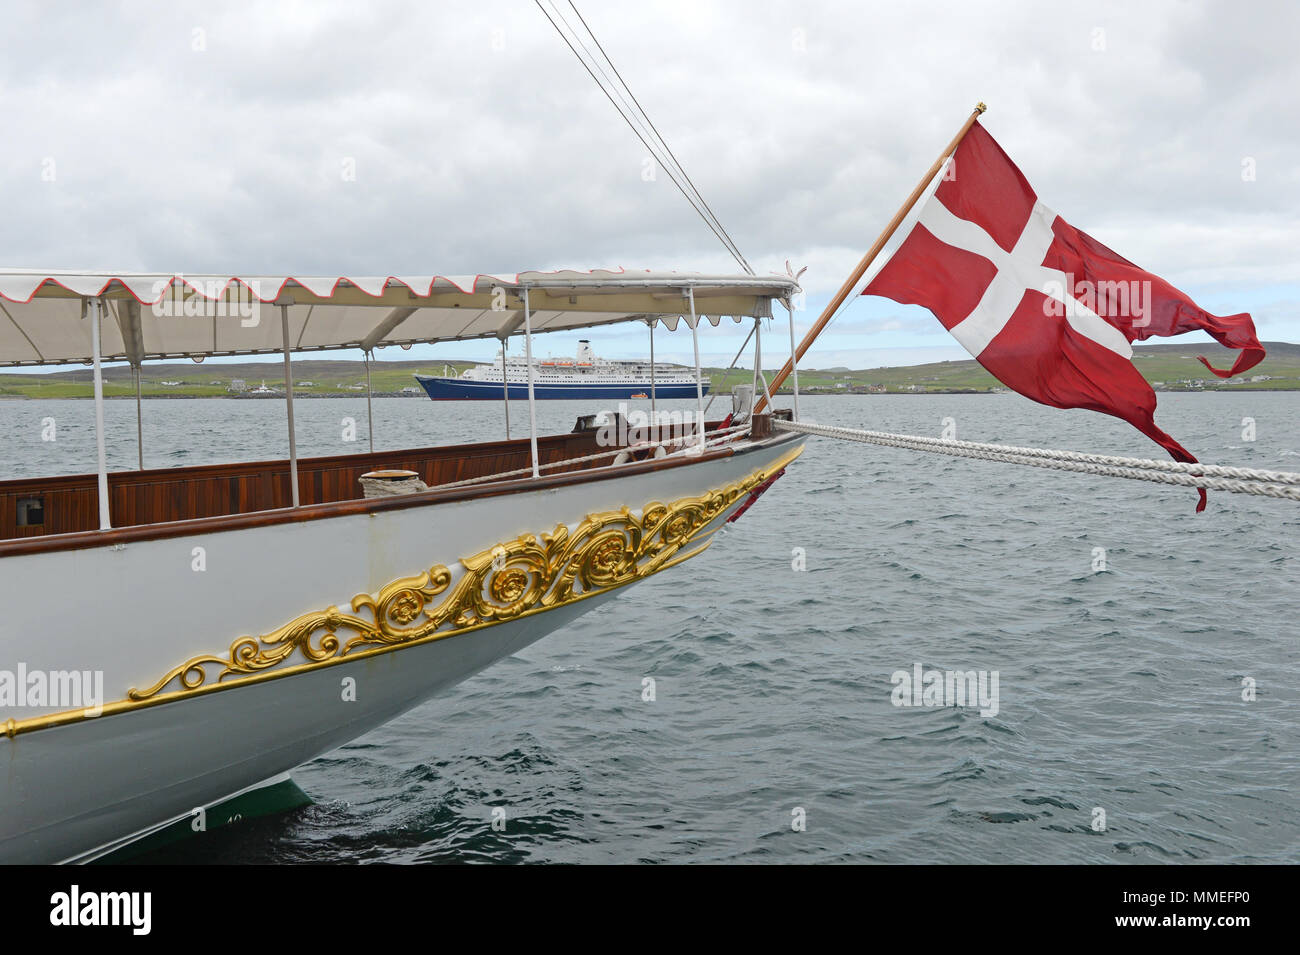 The Danish Royal boat the Dannebrog on her visit to Lerwick in the Shetland Isles - Stock Image